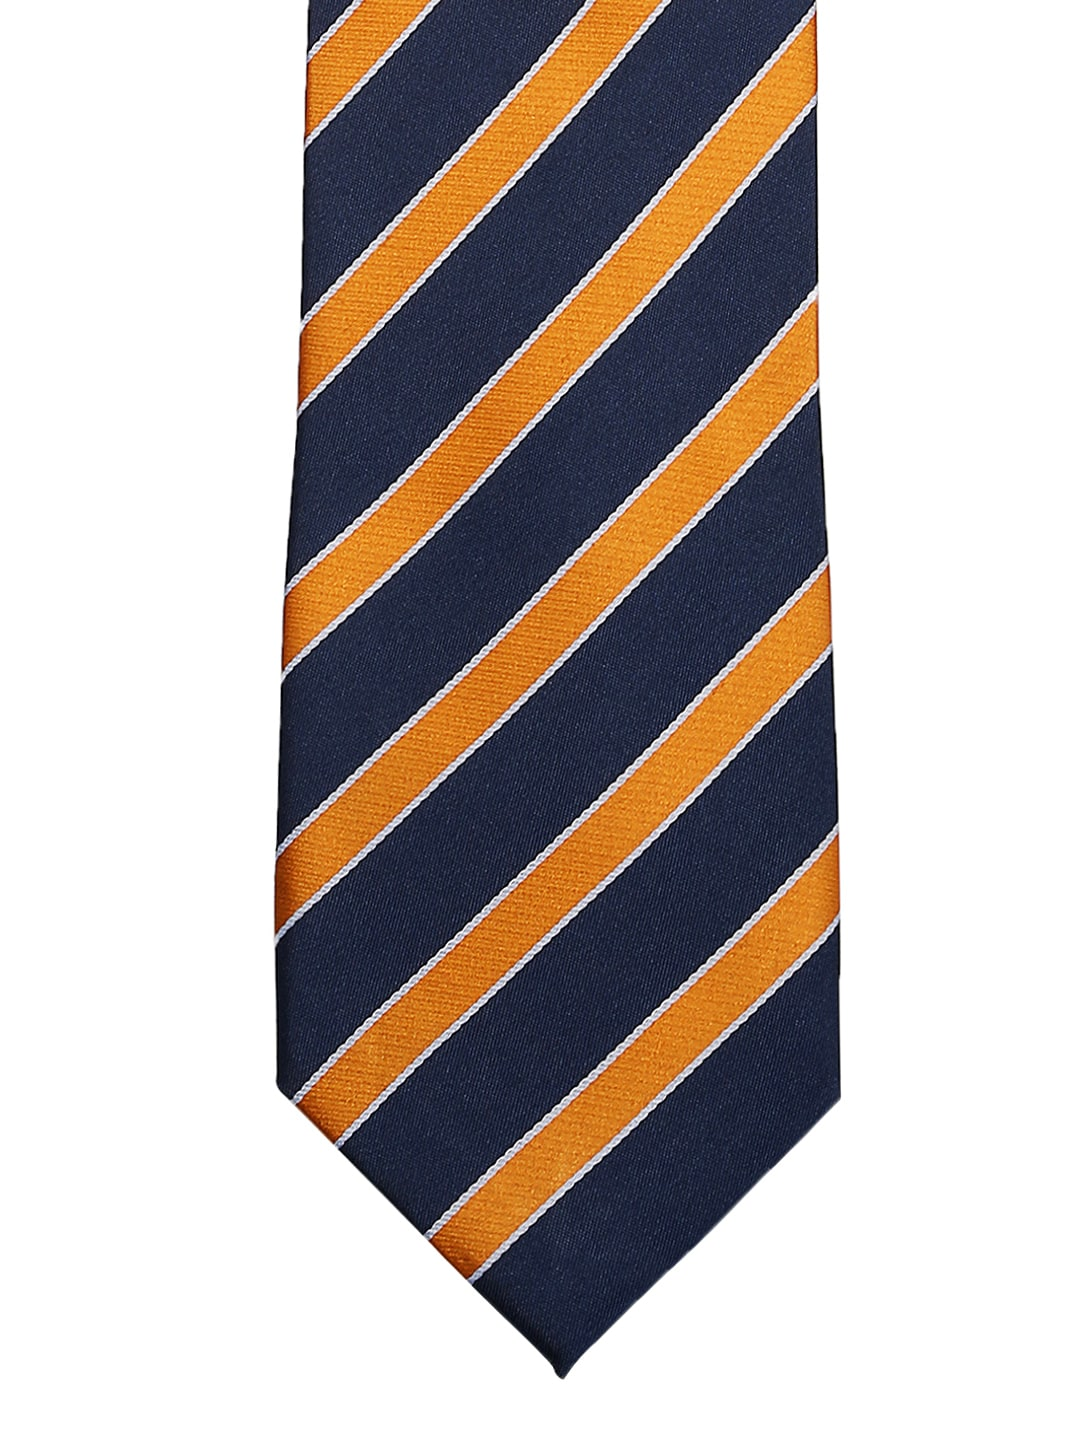 Tossido Blue & Yellow Striped Tie